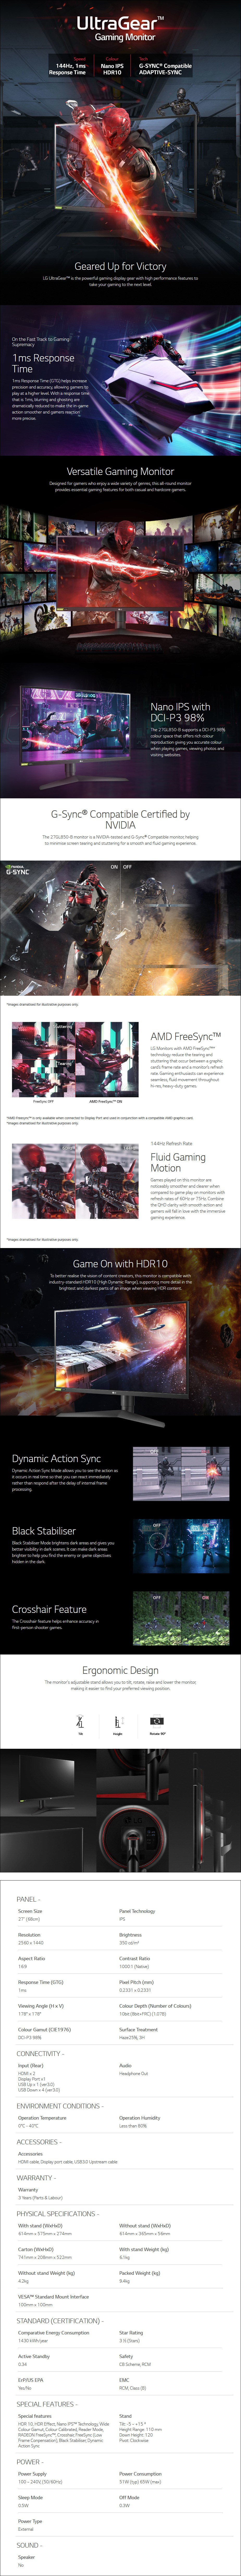 "LG UltraGear 27GL850 27"" 144Hz QHD 1ms HDR10 G-Sync Nano IPS Gaming Monitor - Overview 1"